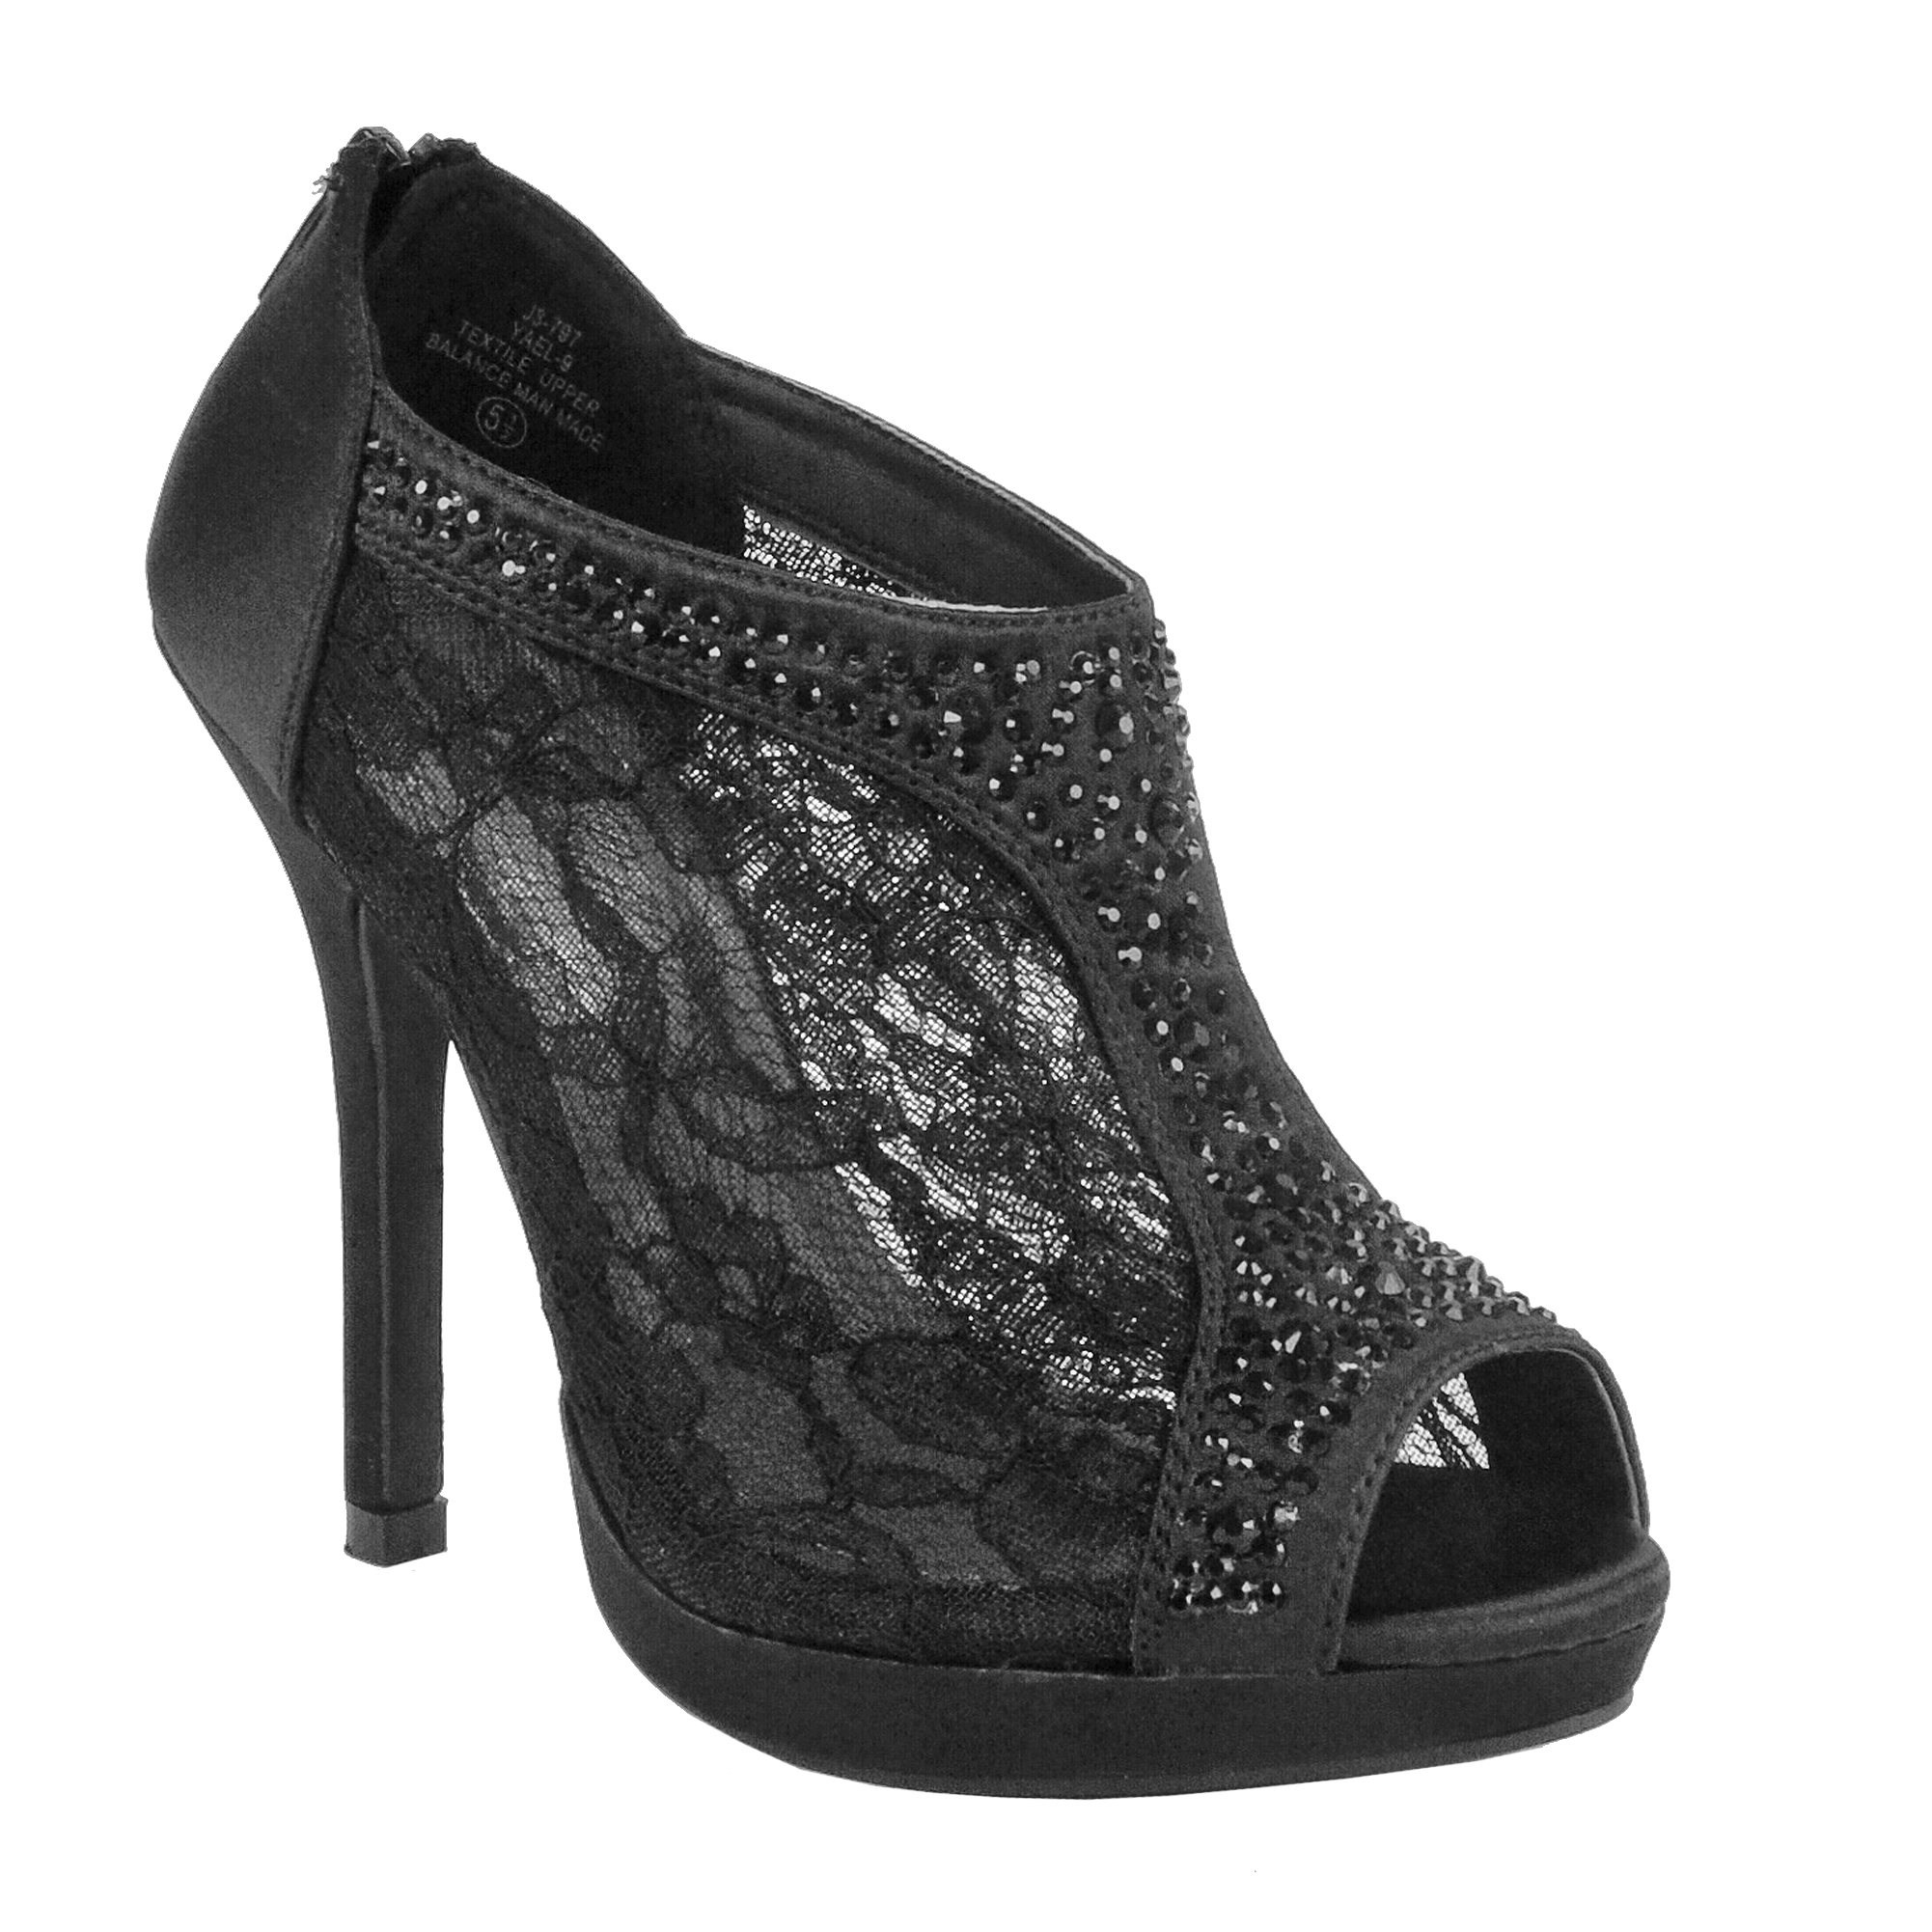 Women's Lace Bridal High Heel Platform Peep Toe Shootie (FREE SHIPPING)